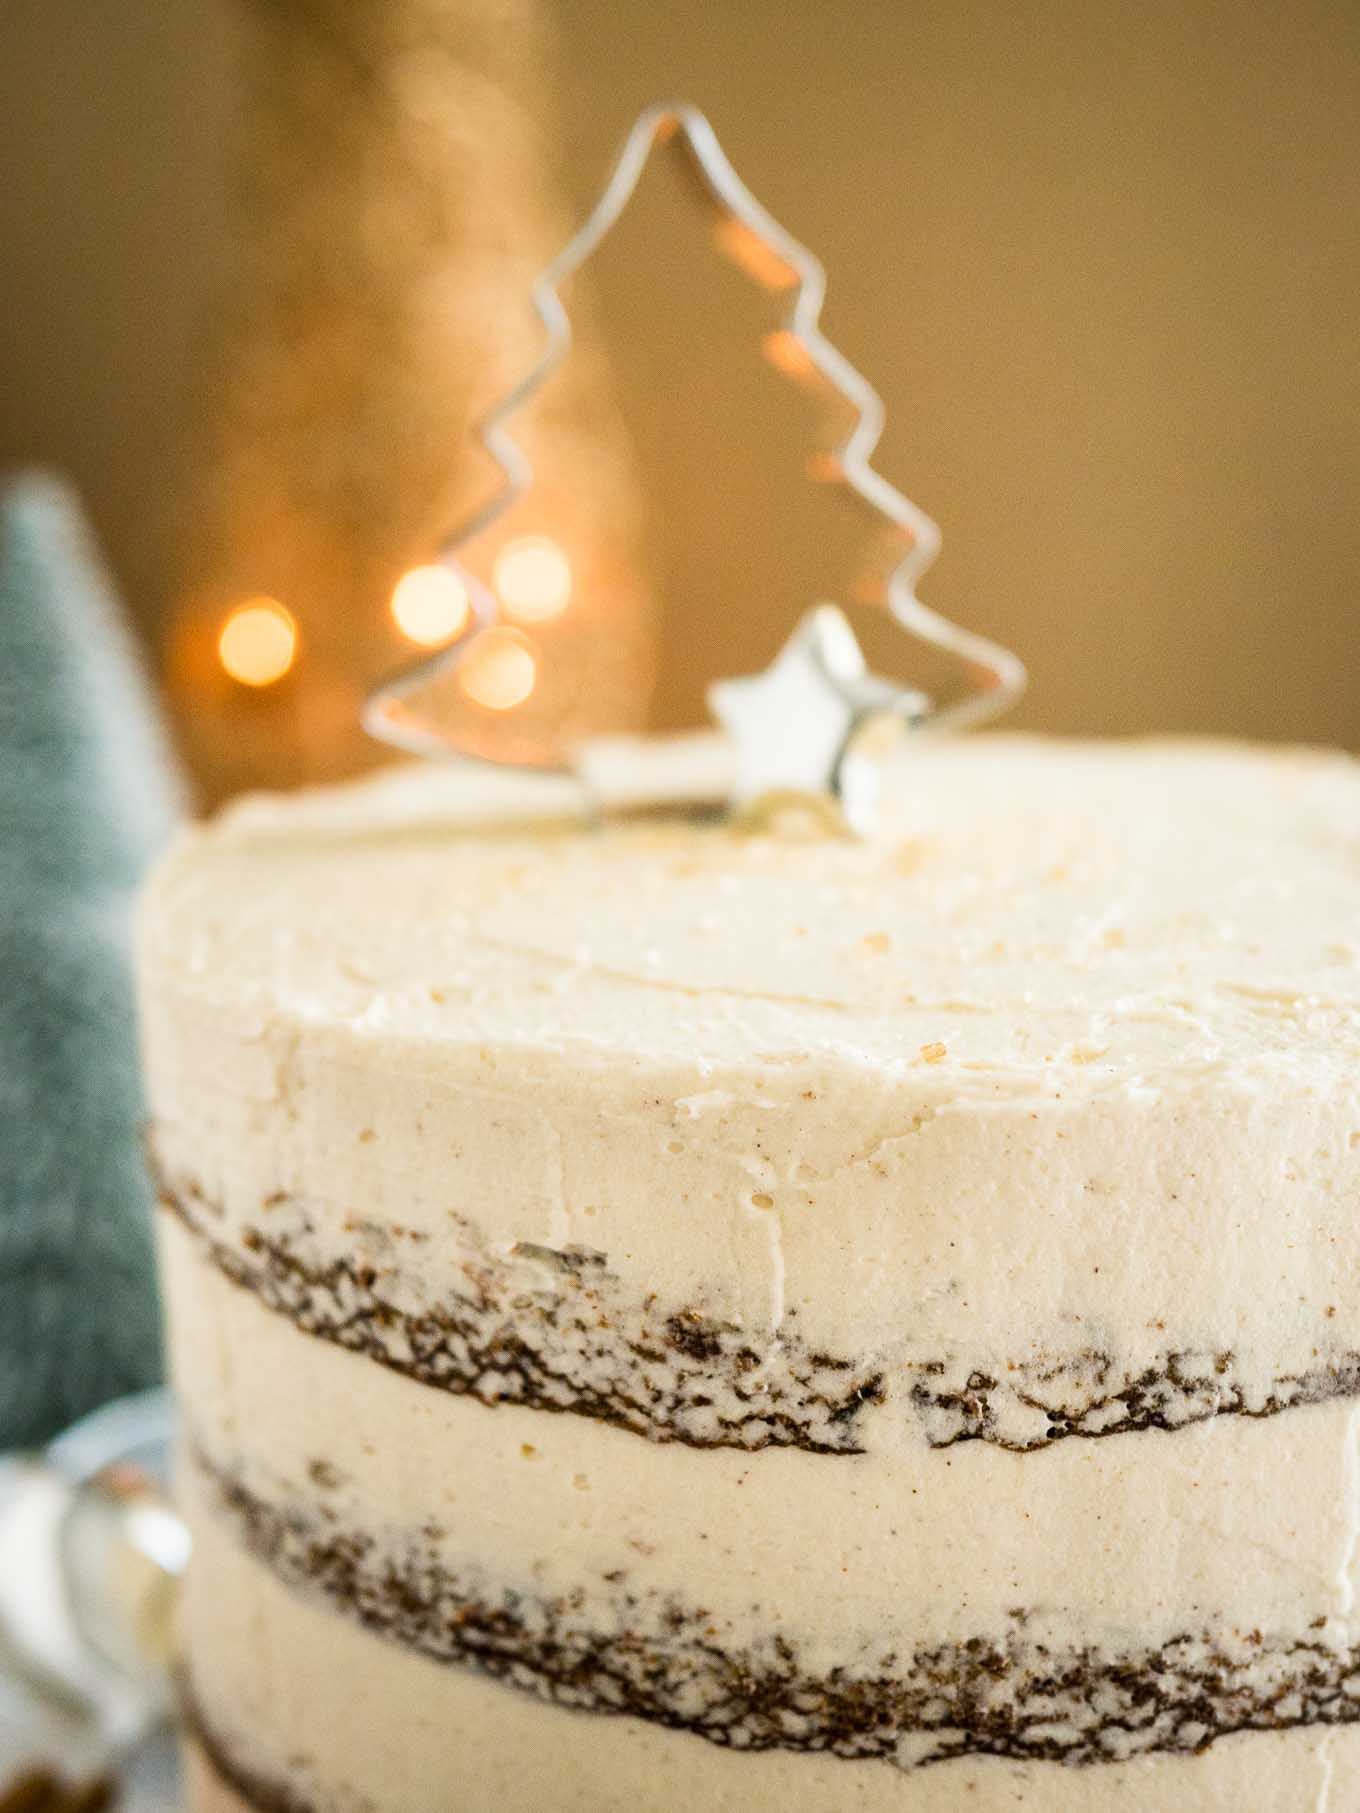 Easy Gingerbread Cake Recipe With Baileys Cream Cheese